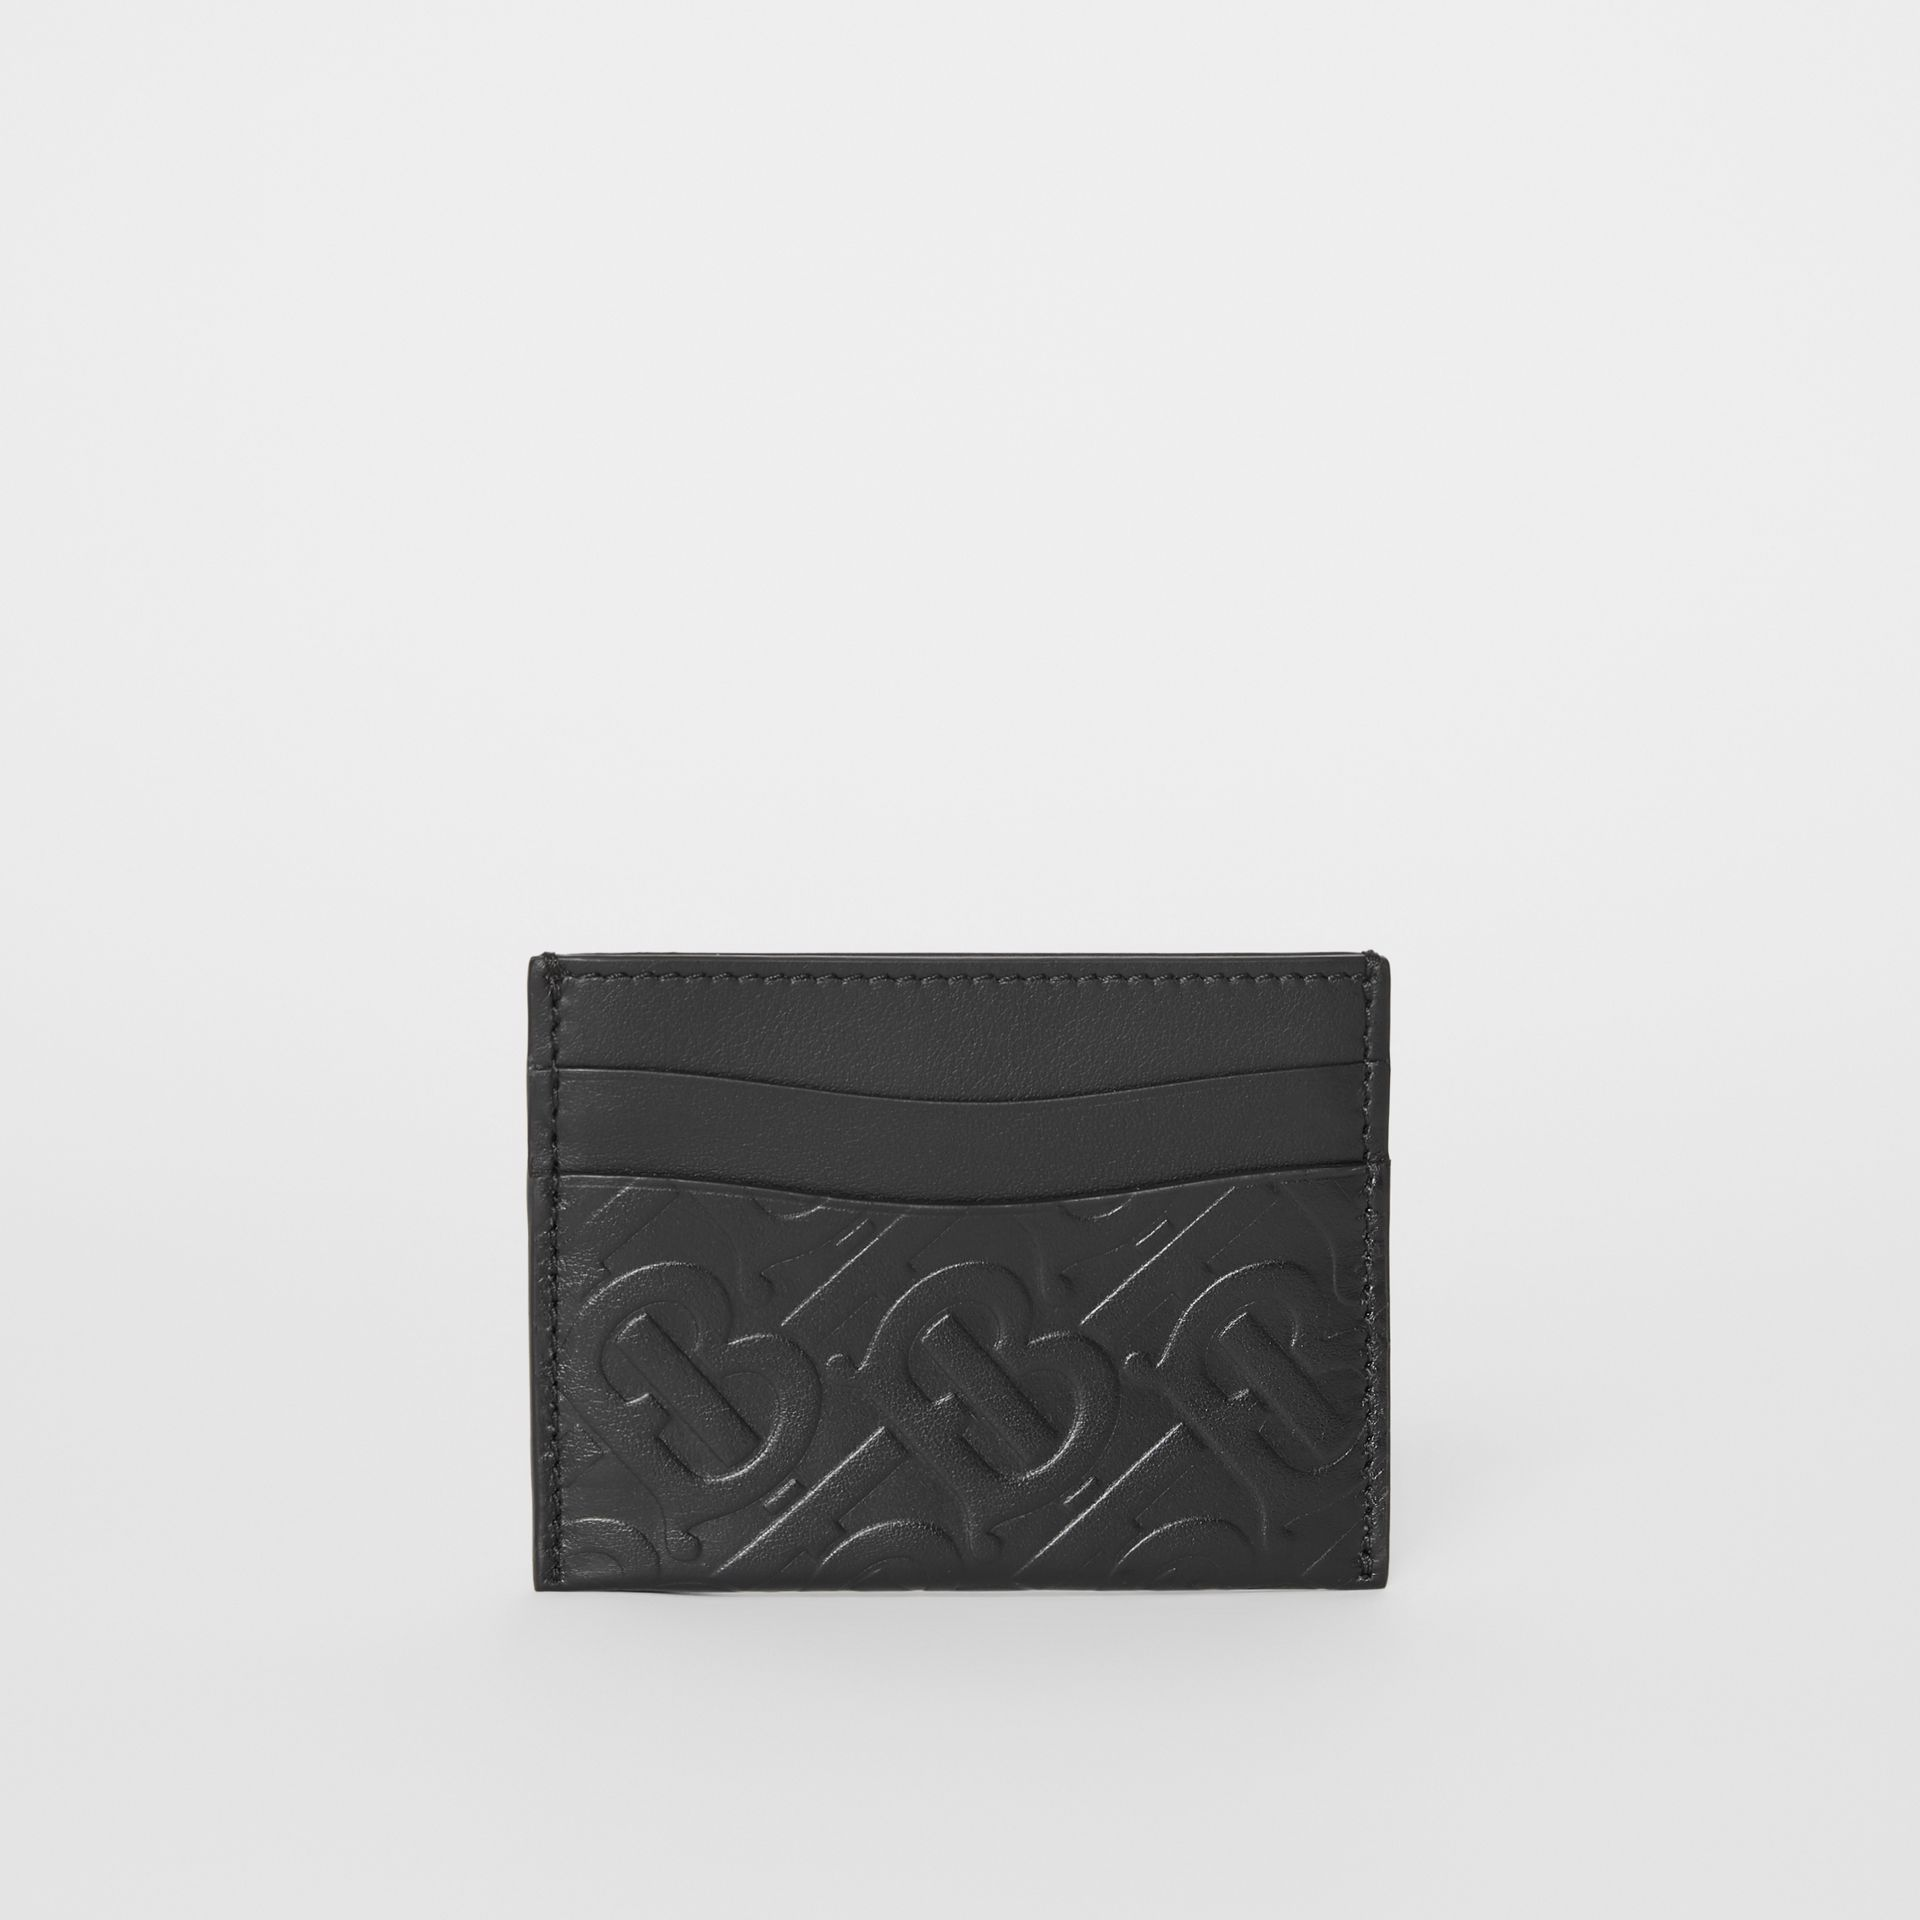 Monogram Leather Card Case in Black - Women | Burberry Canada - gallery image 3